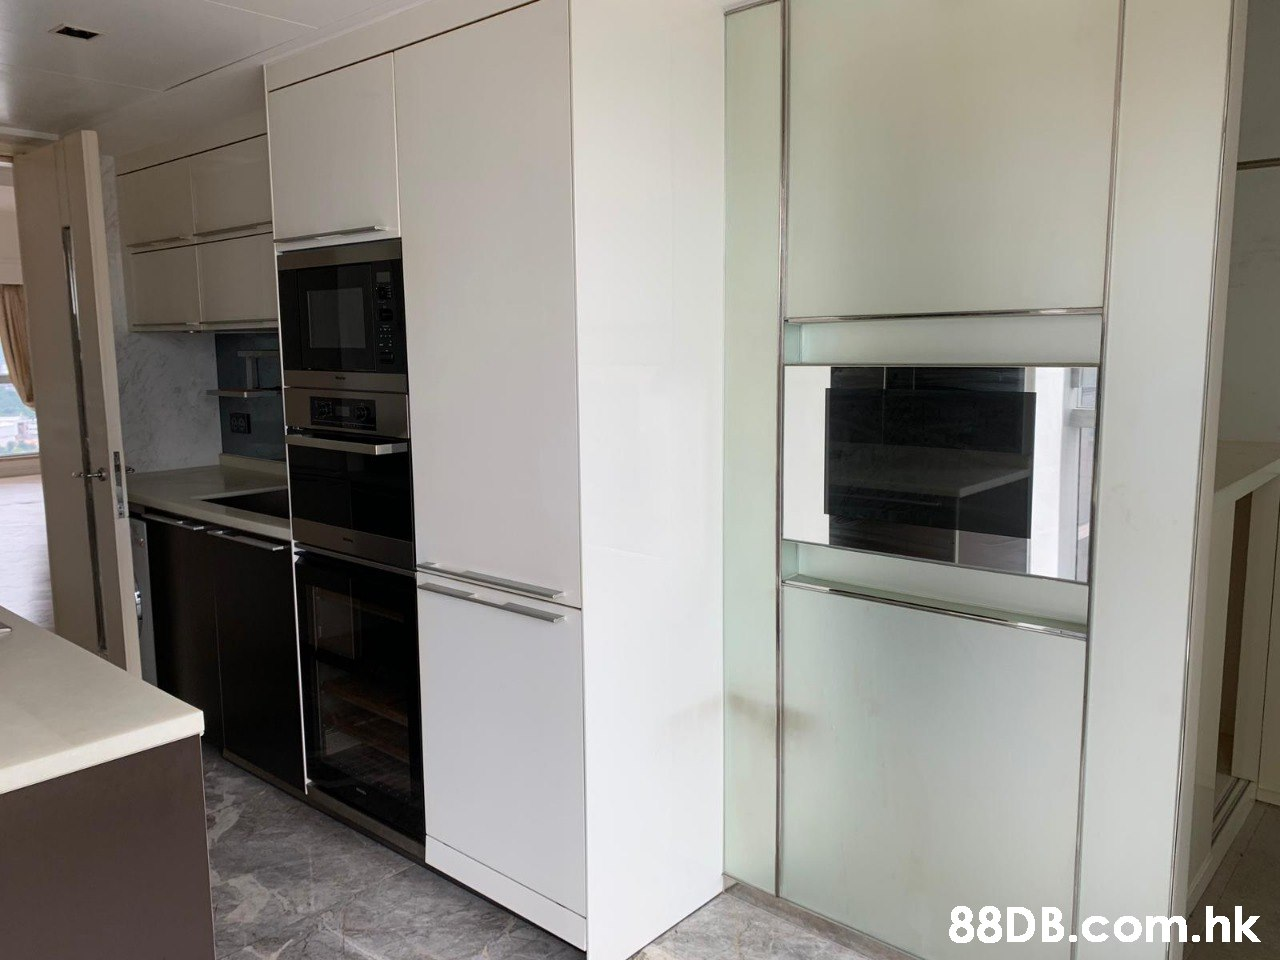 .hk  Property,Room,Cabinetry,Kitchen,Furniture